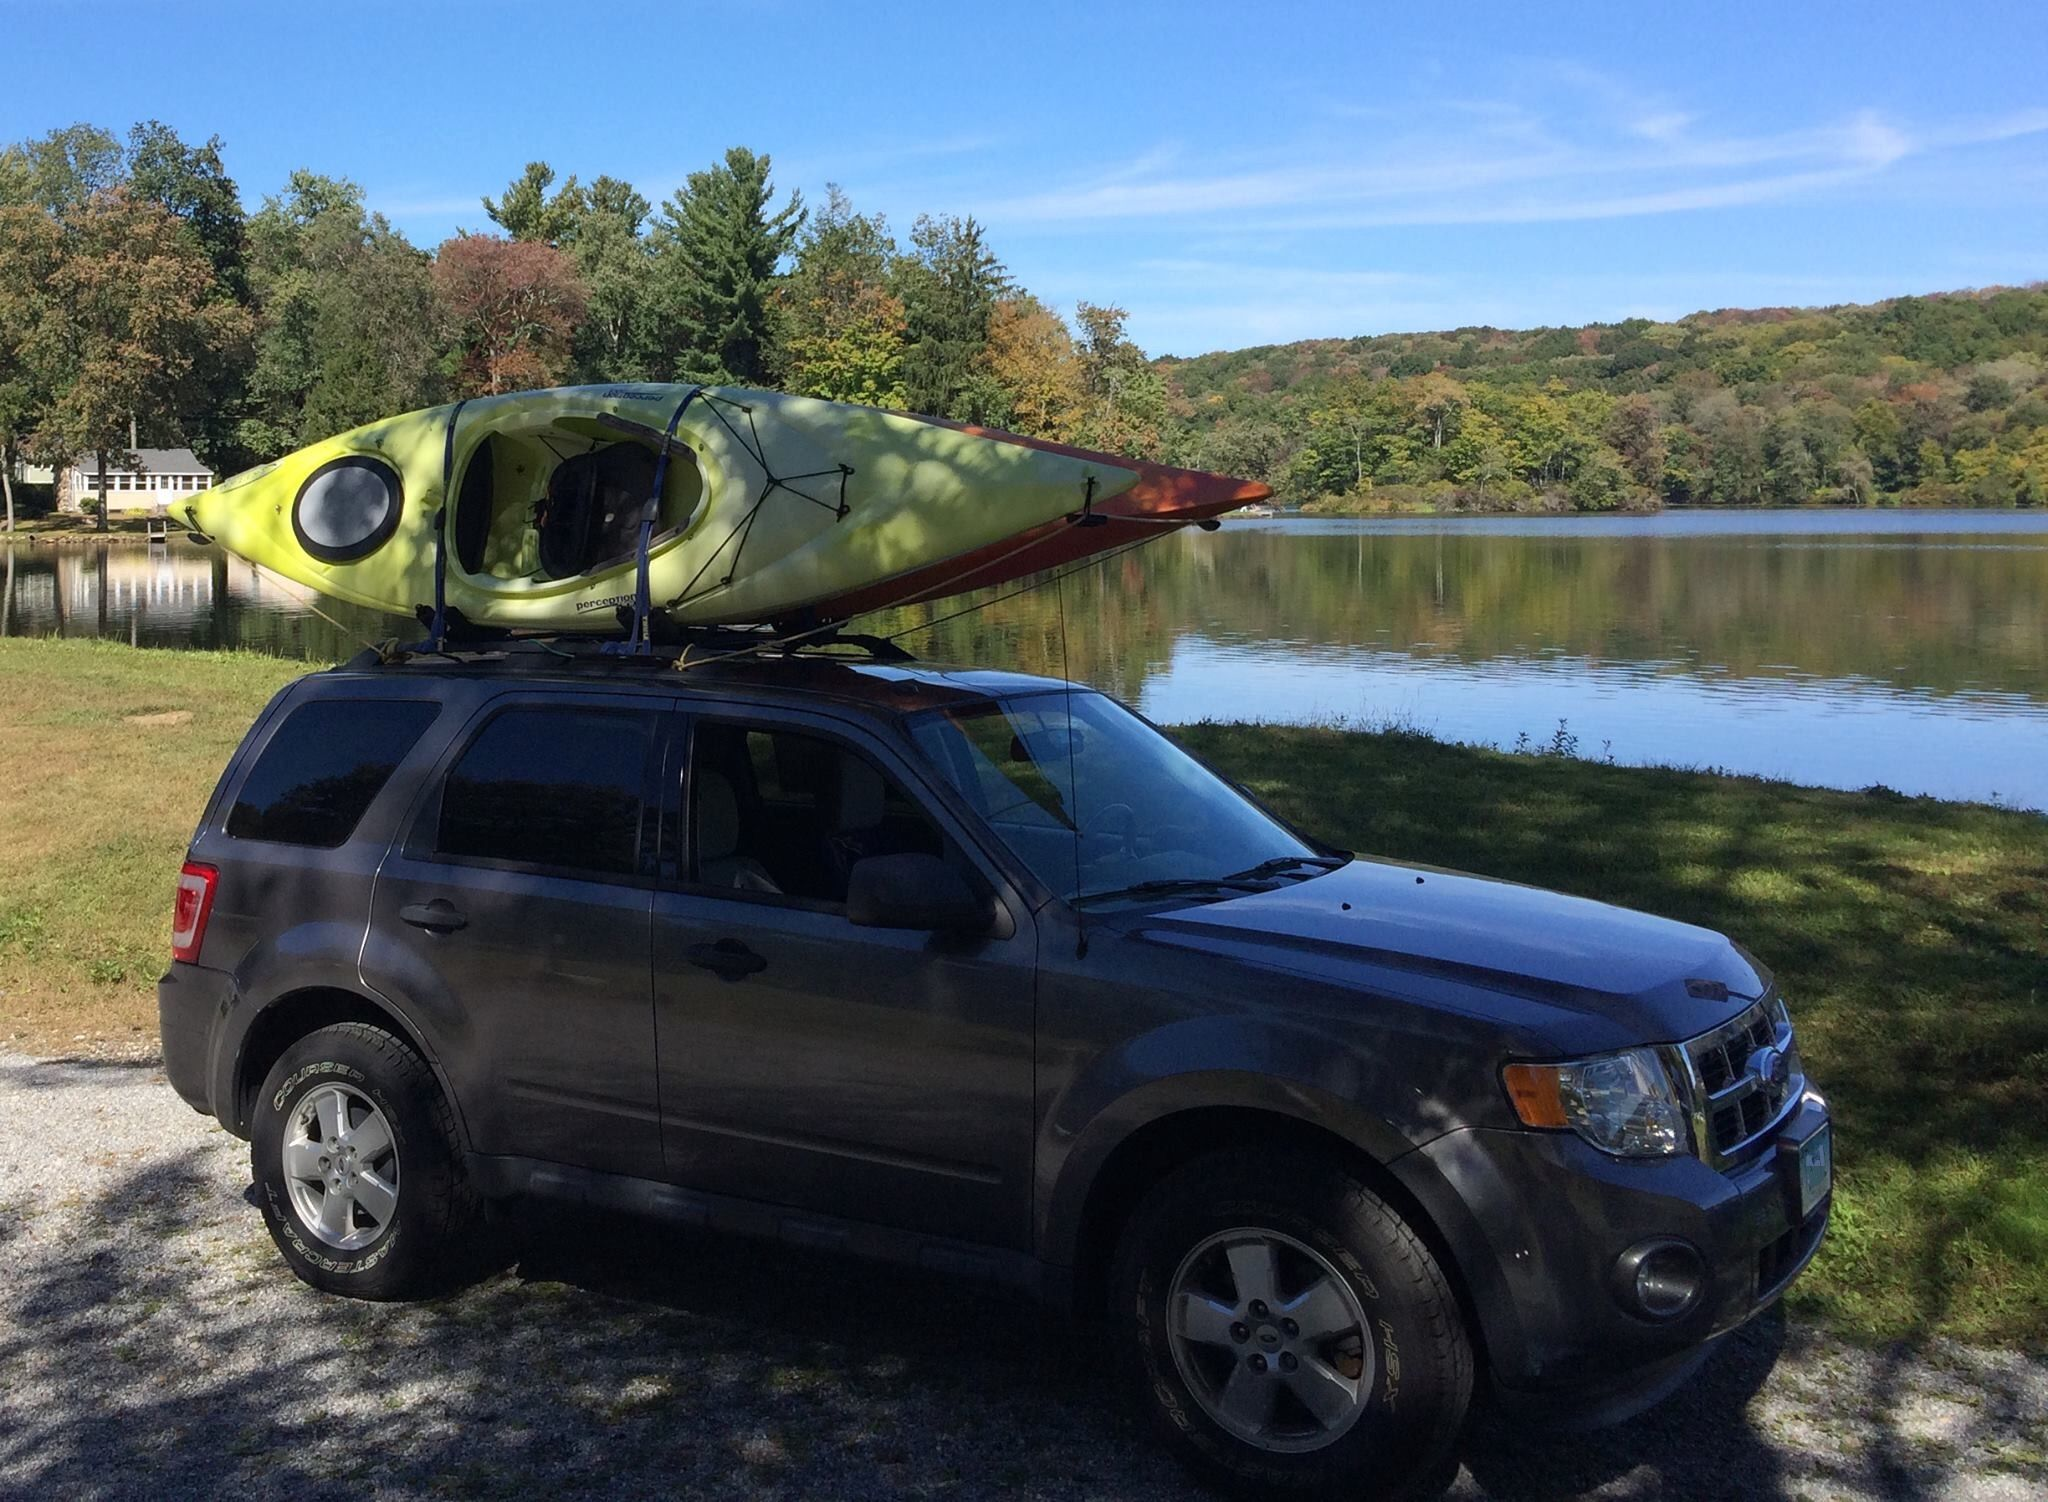 2011 Ford Escape With Kayaks By The Lake Ford Escape Kayaking